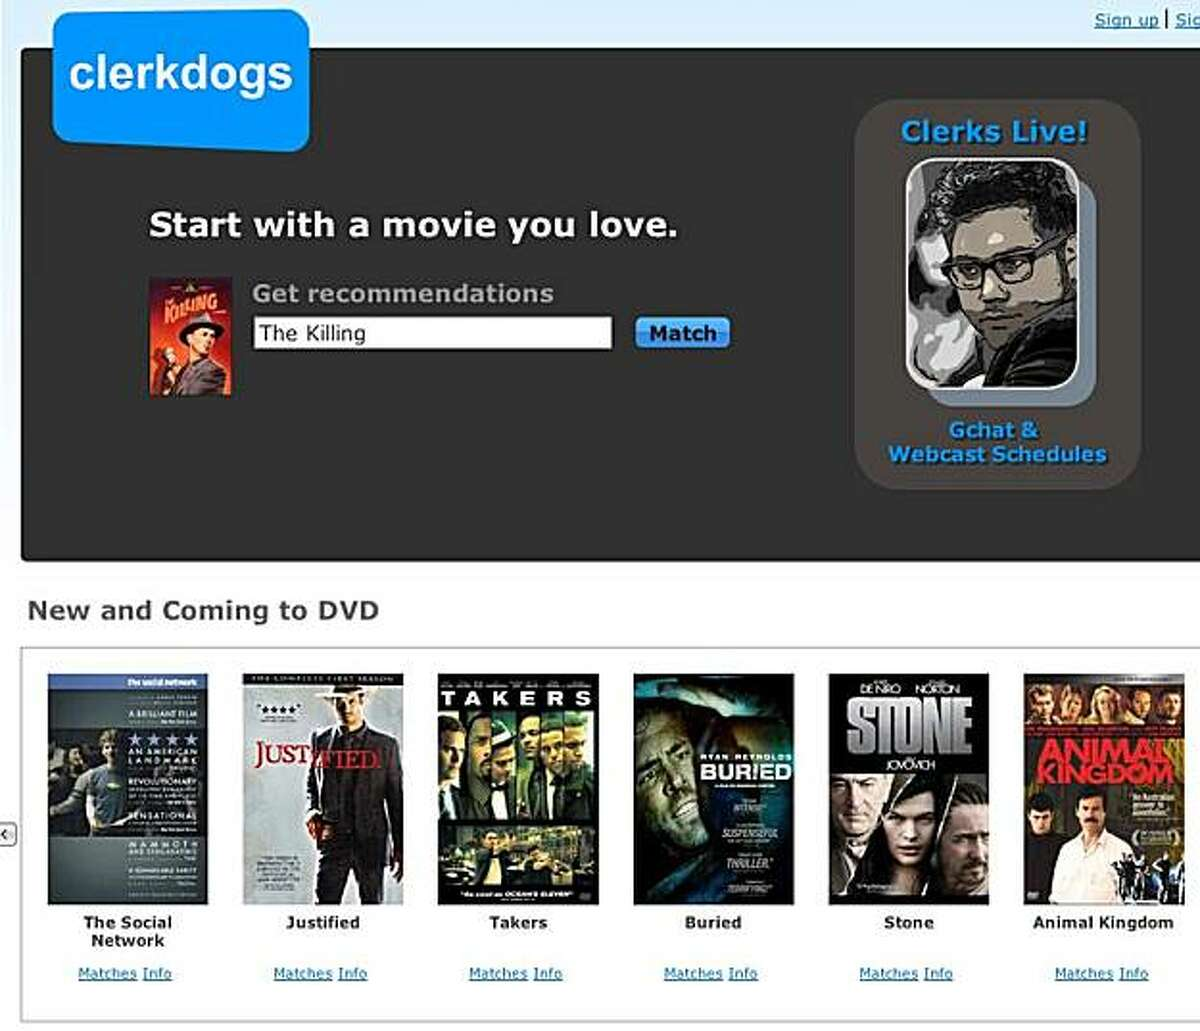 clerkdogs.com is a site that gives access to real person for chatting about videos for rent.